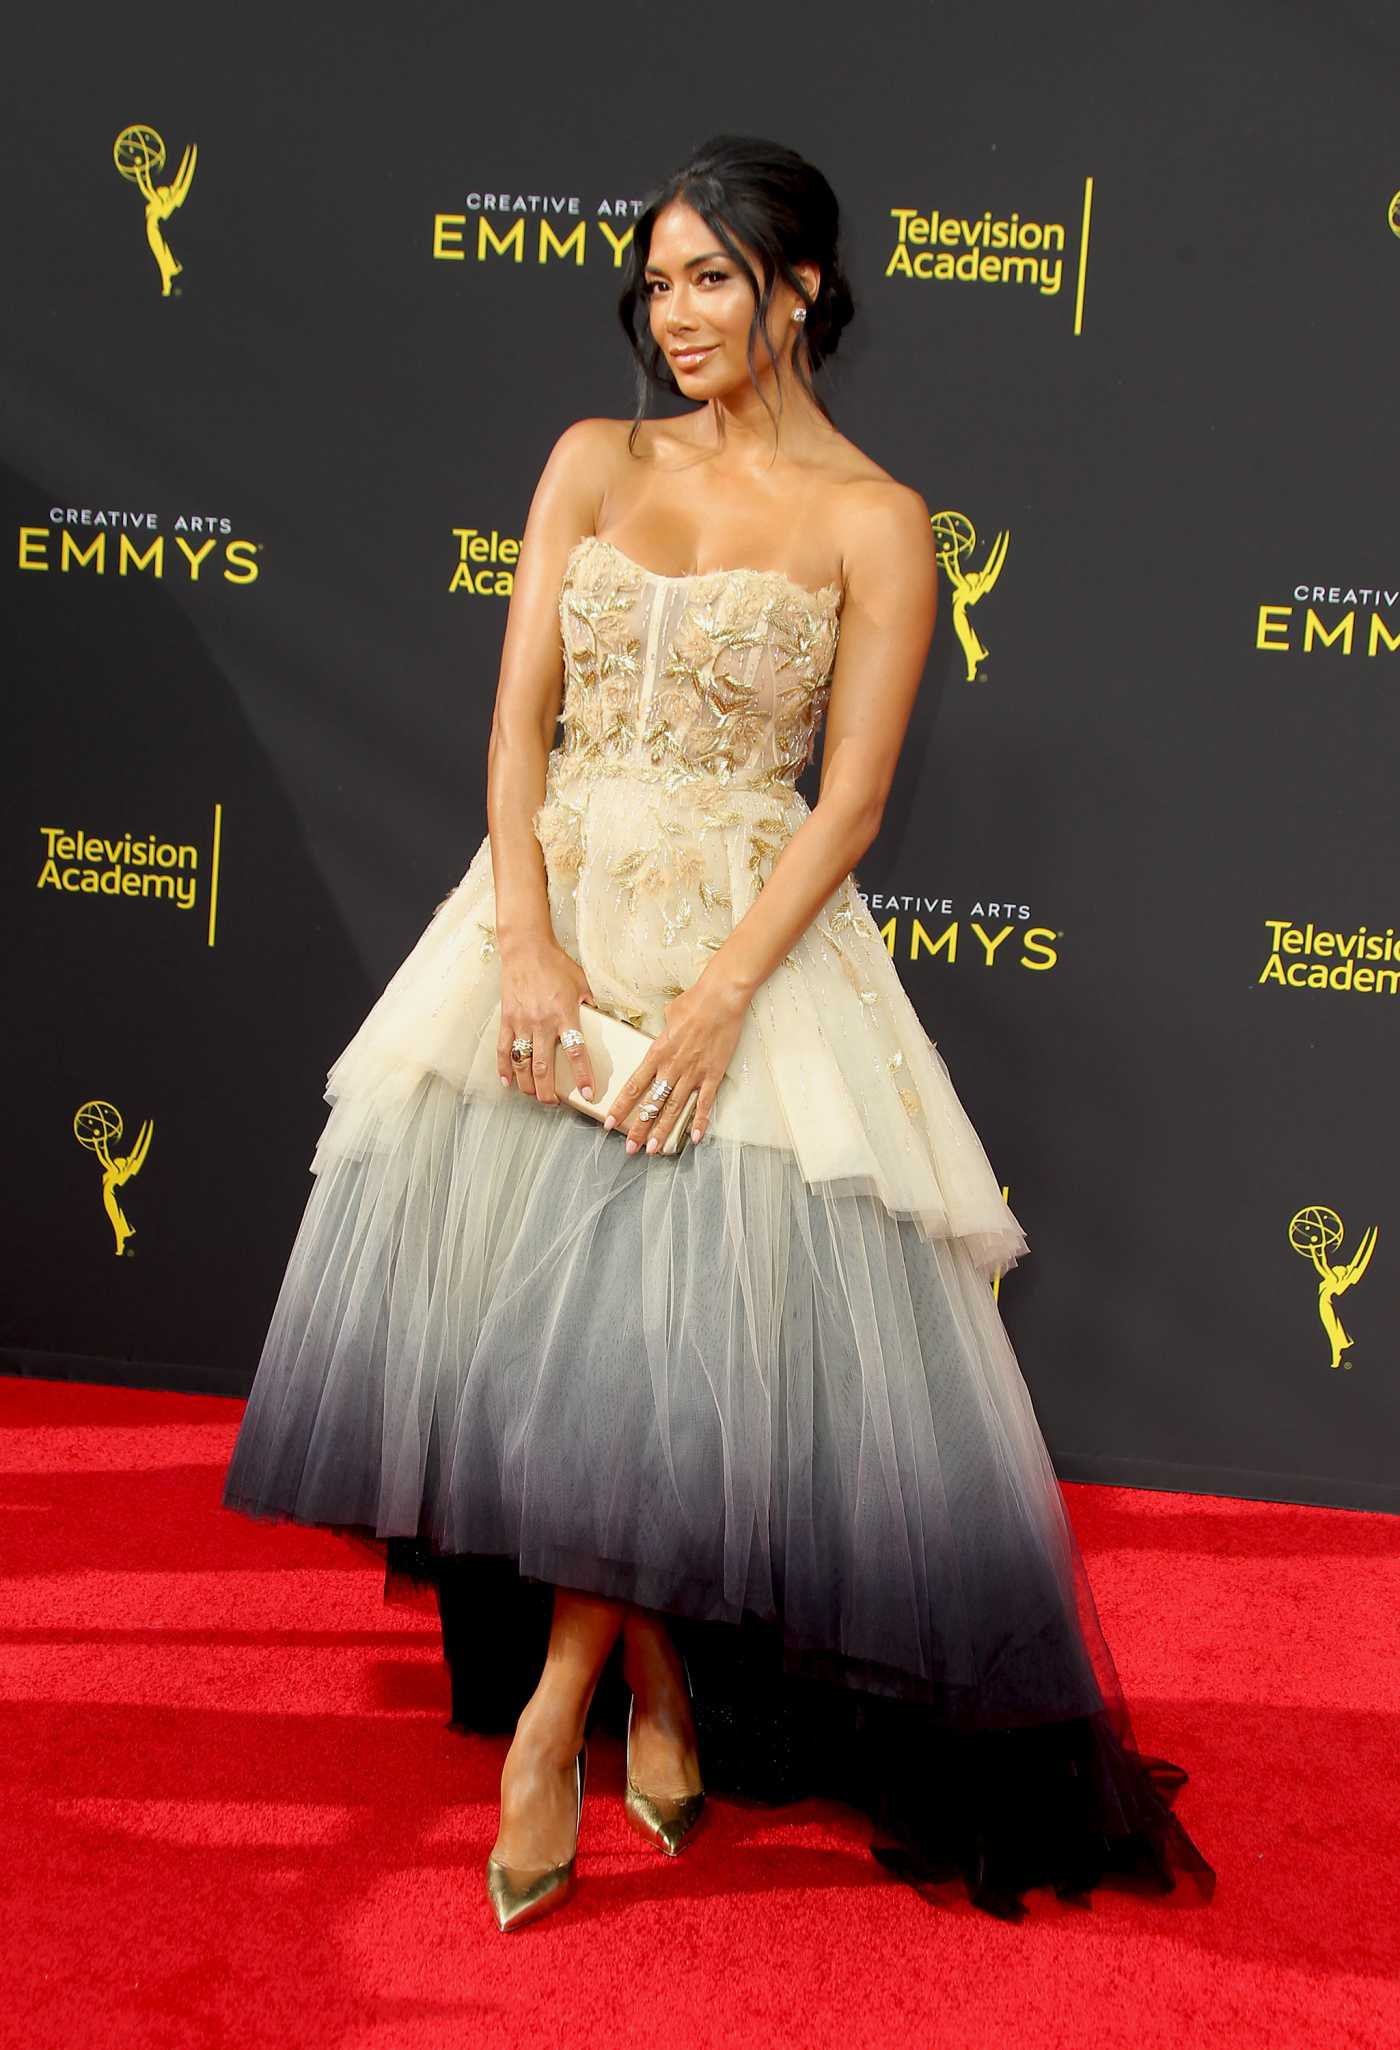 Nicole Scherzinger Attends 2019 Creative Arts Emmy at the Microsoft Theatre in Los Angeles 09/14/2019